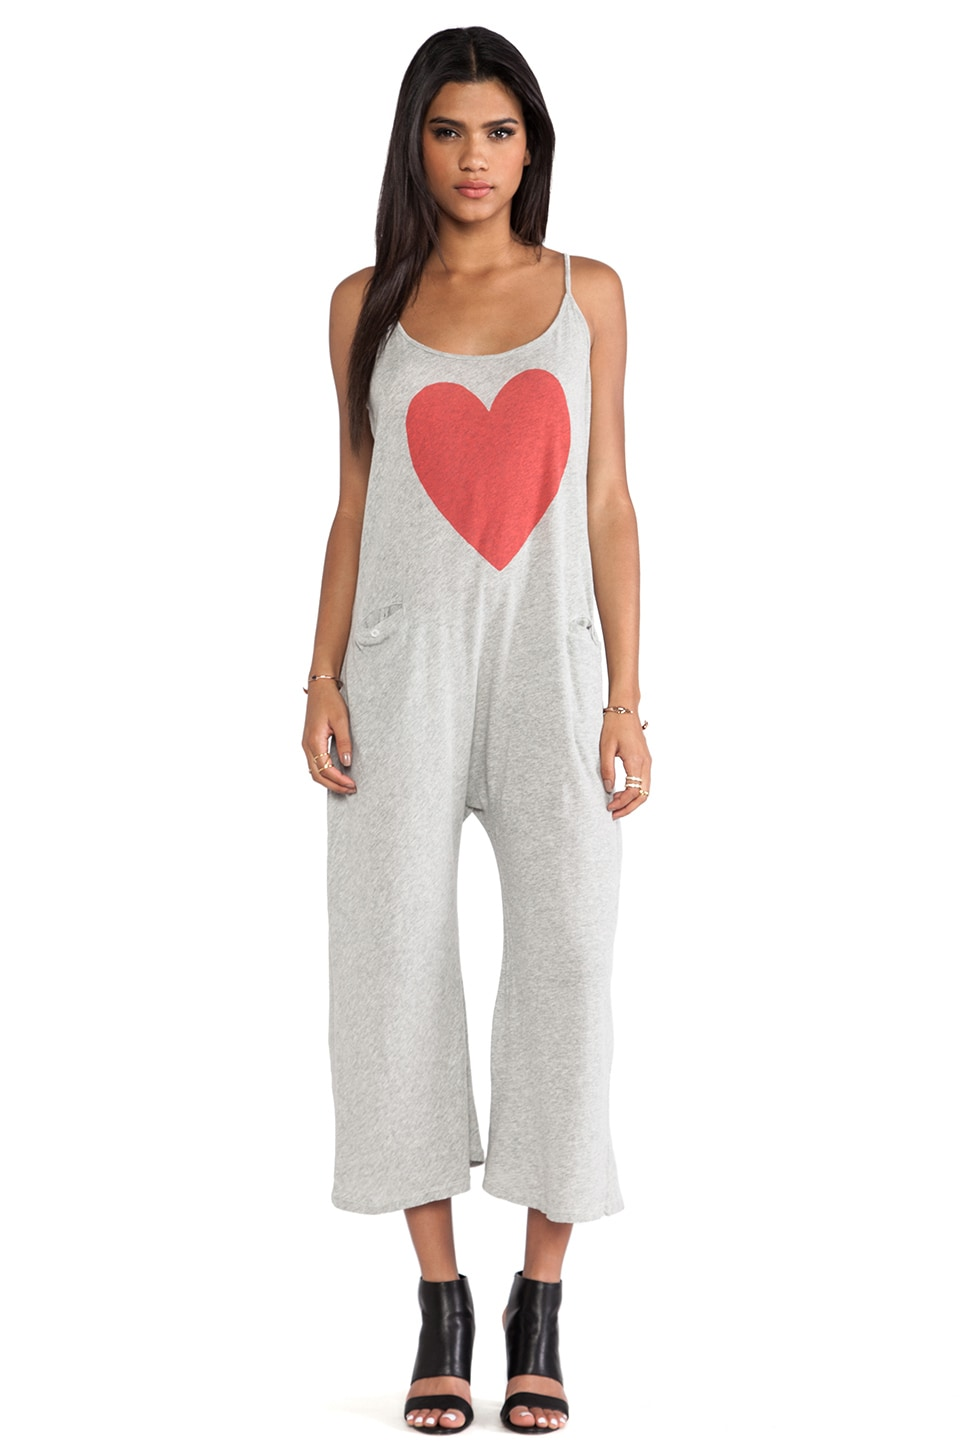 Wildfox Couture Heartland Easy Island Onesie in Vintage White